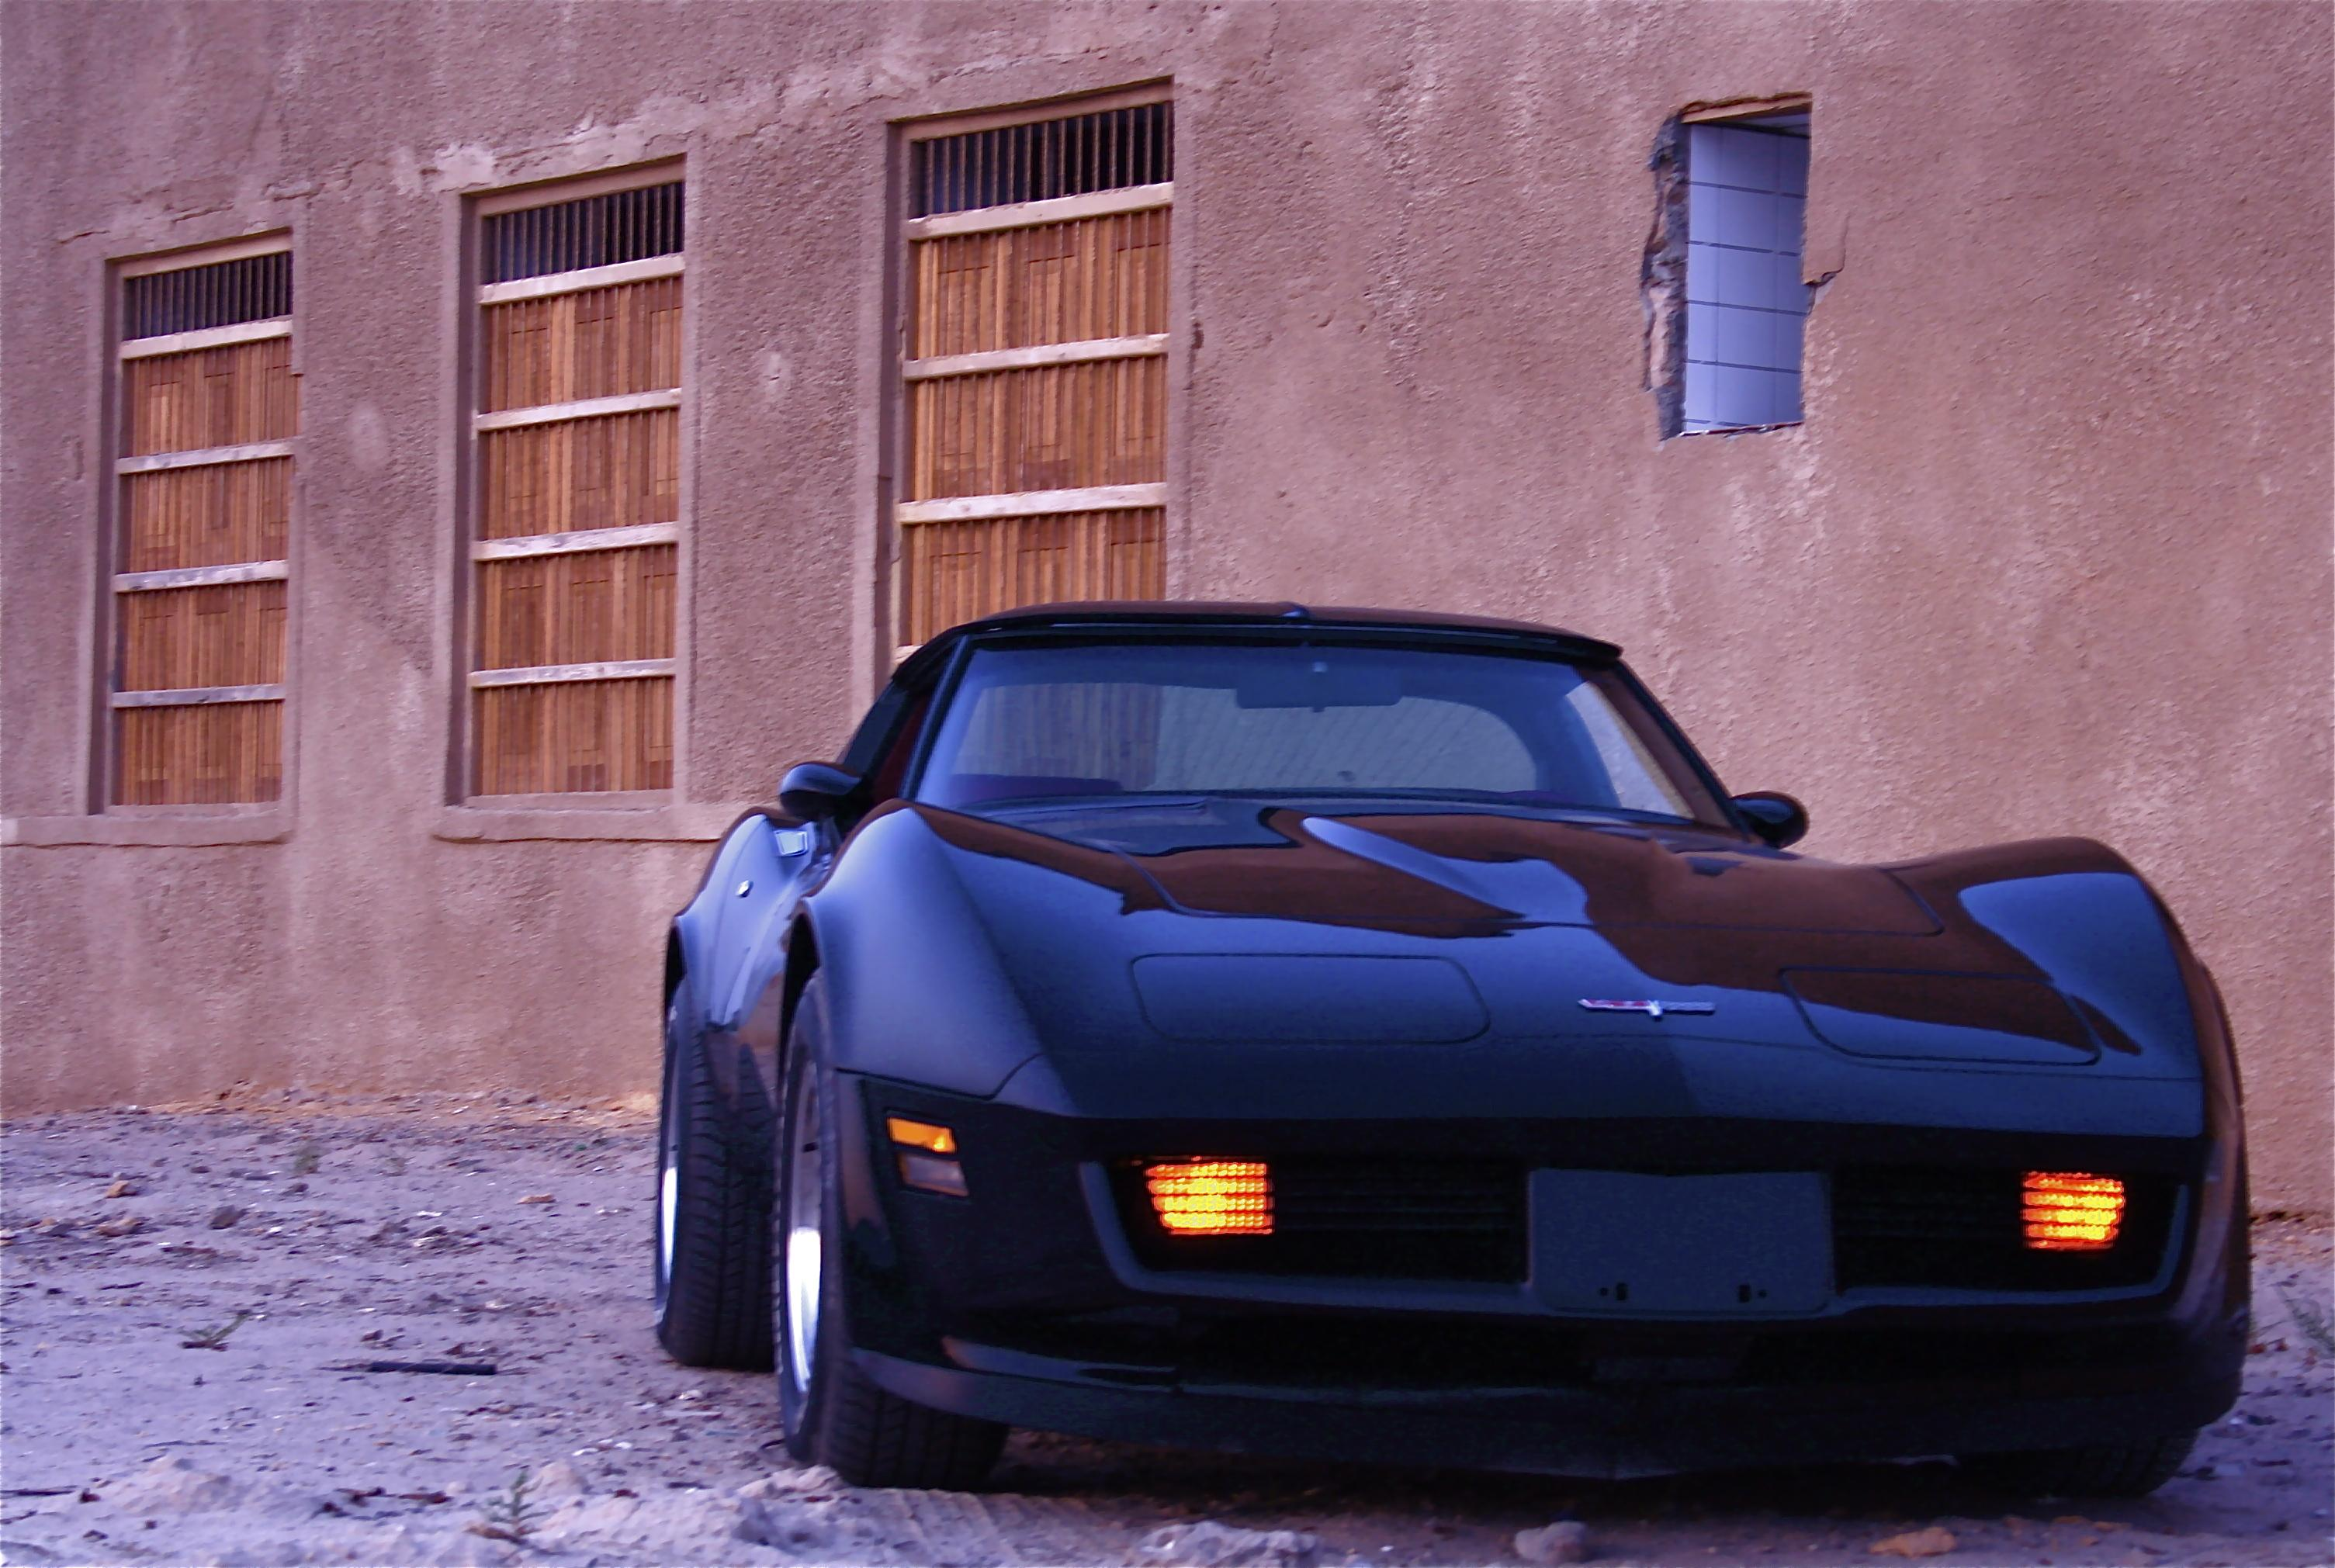 Lemzeez 1980 Chevrolet Corvette Specs, Photos ...